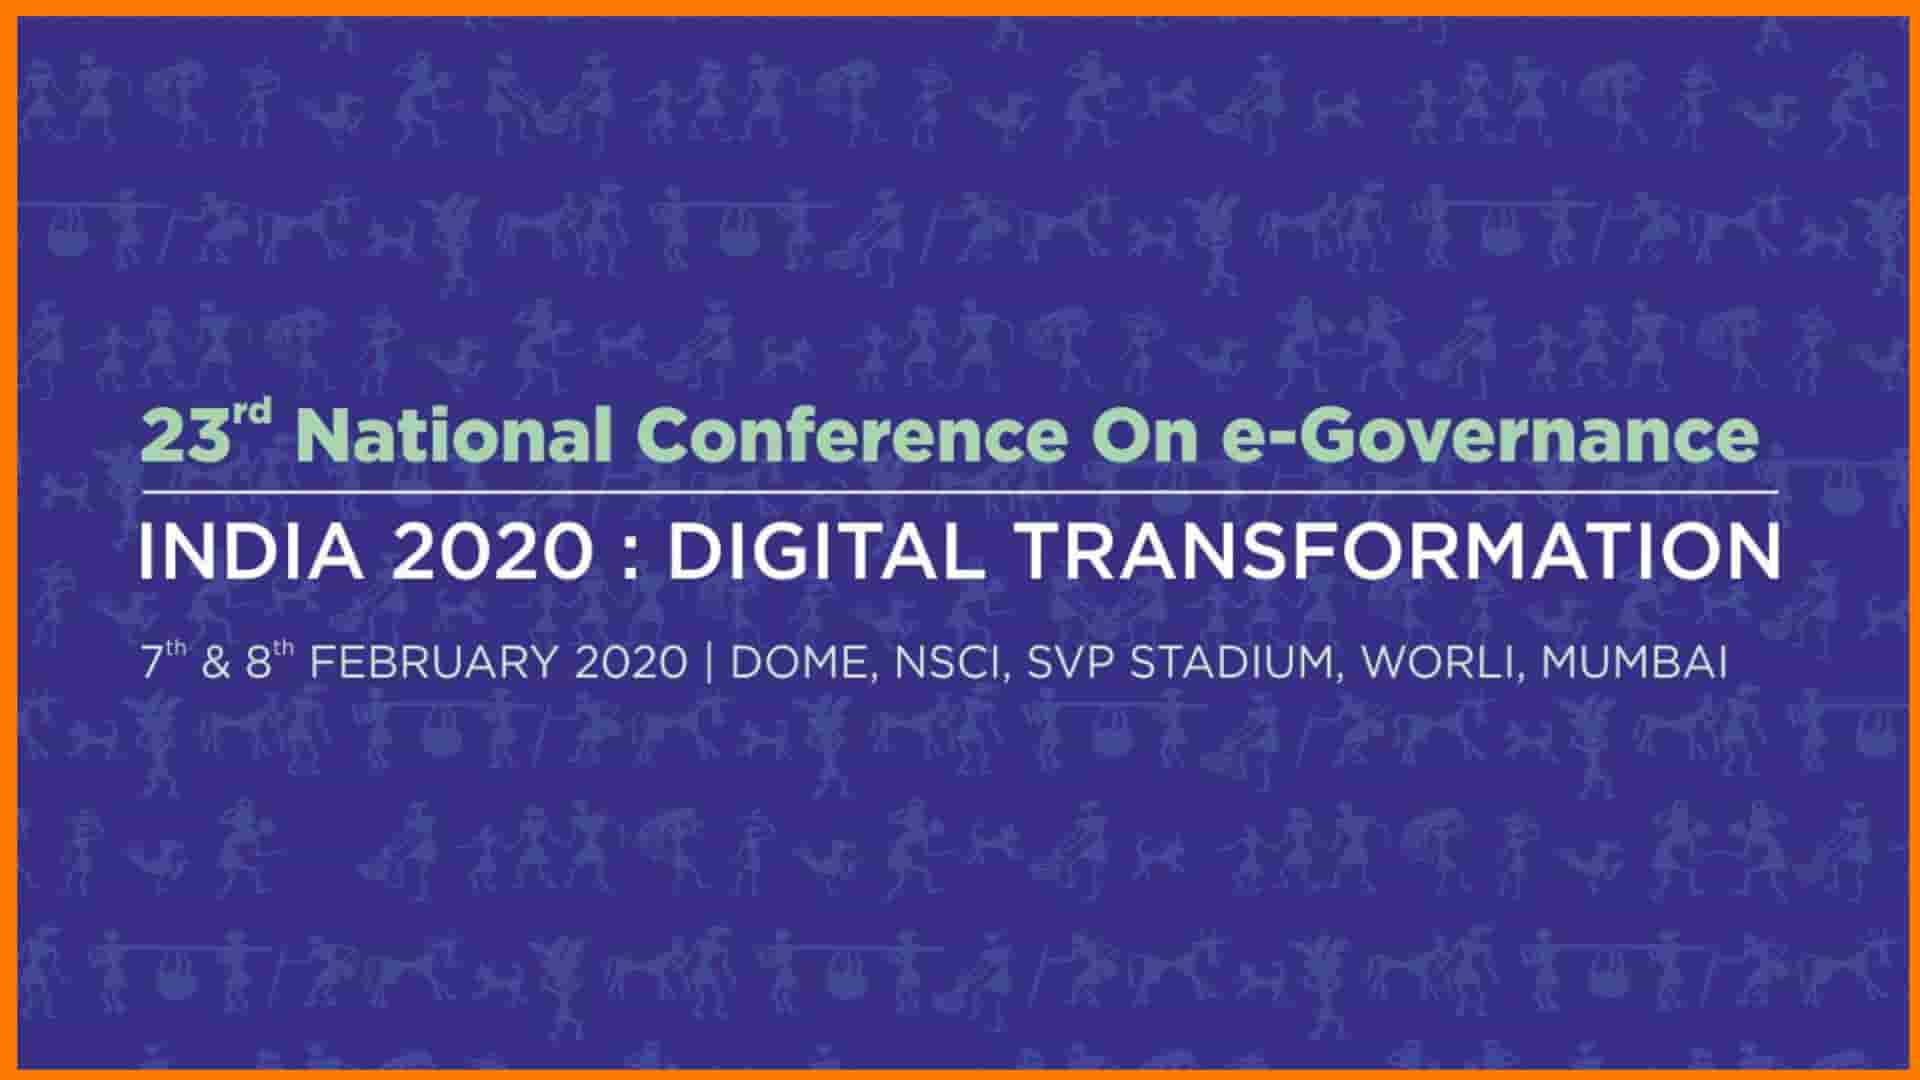 23rd National Conference on e-Governance Starts Today